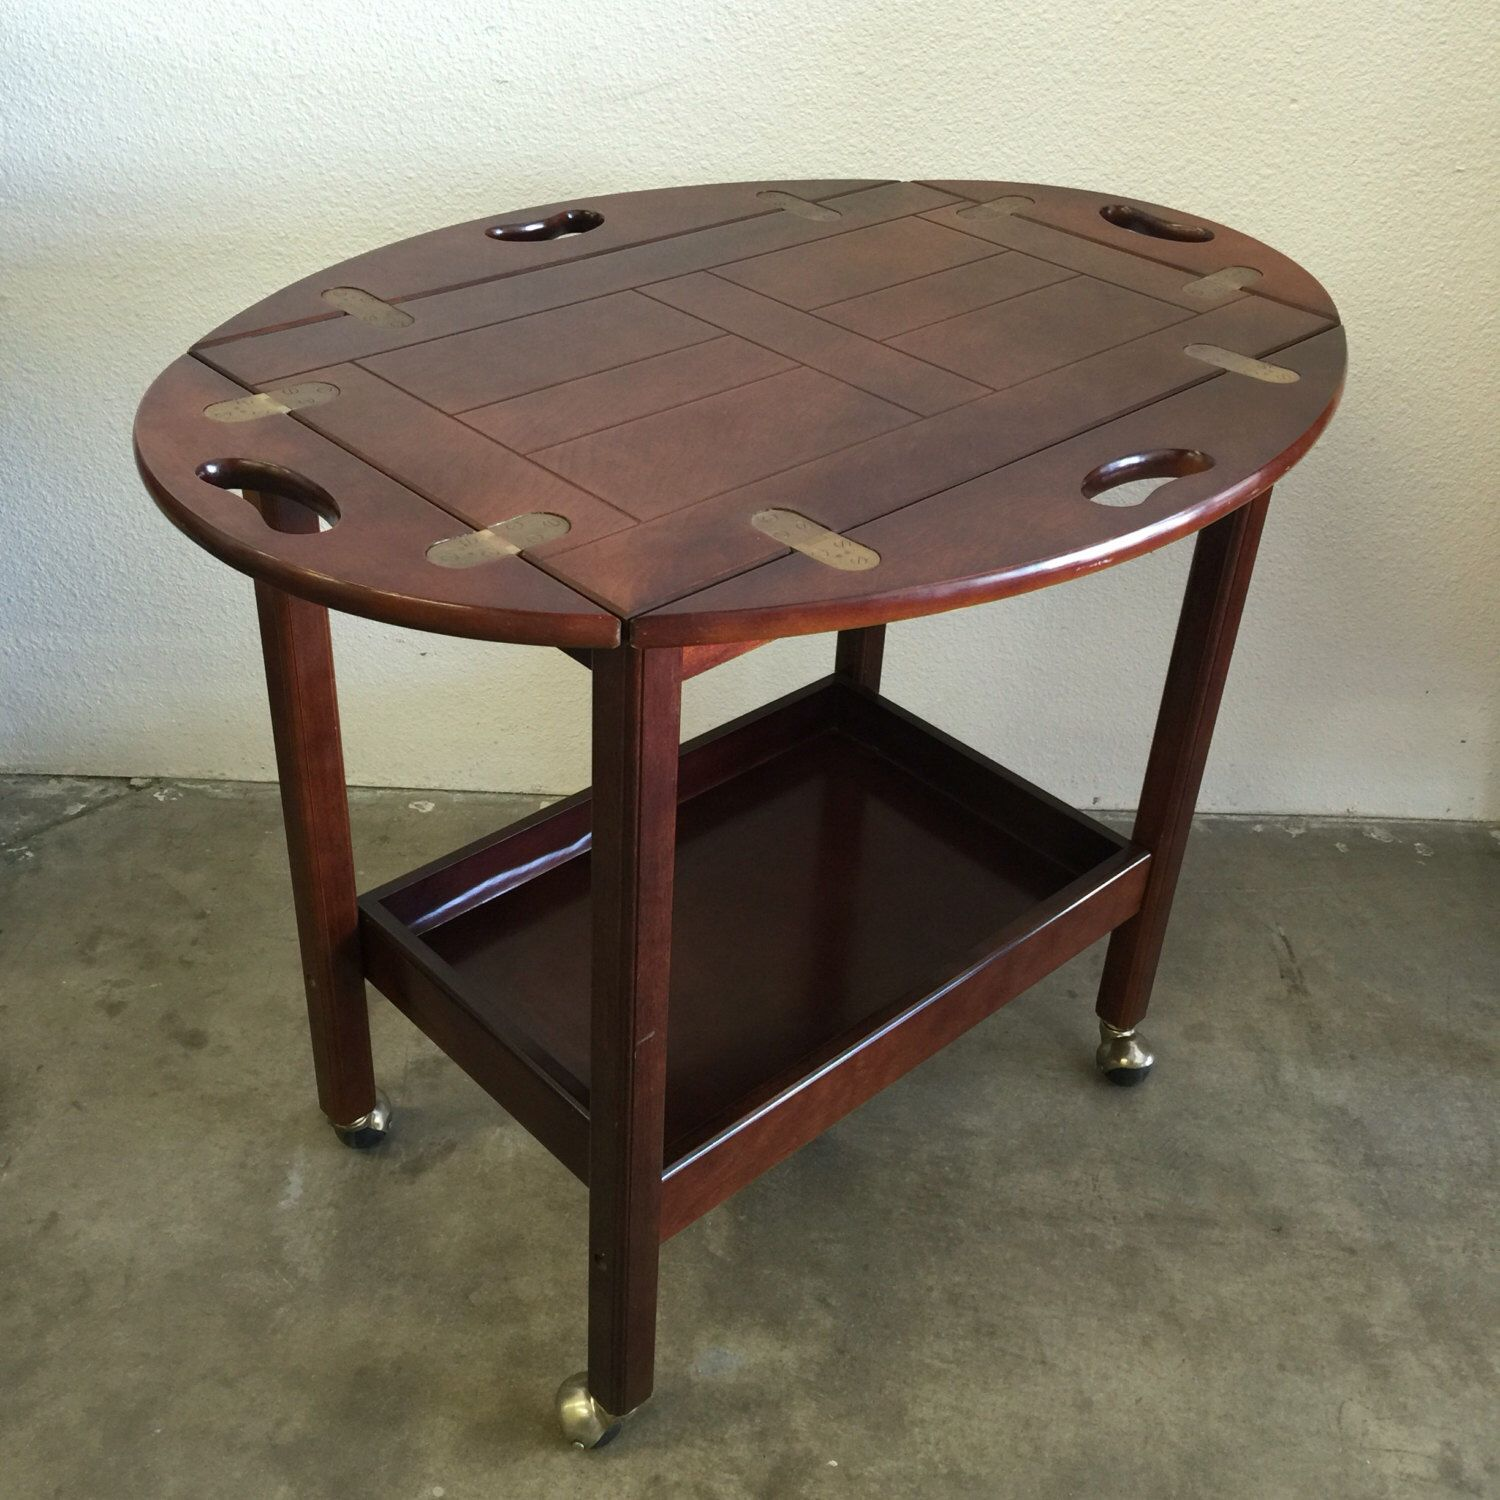 Vintage Bombay Company Rolling Tea Or Butlers Cart With Removable Tray.  Marked Beautiful Mahogany With A High Gloss Finish.